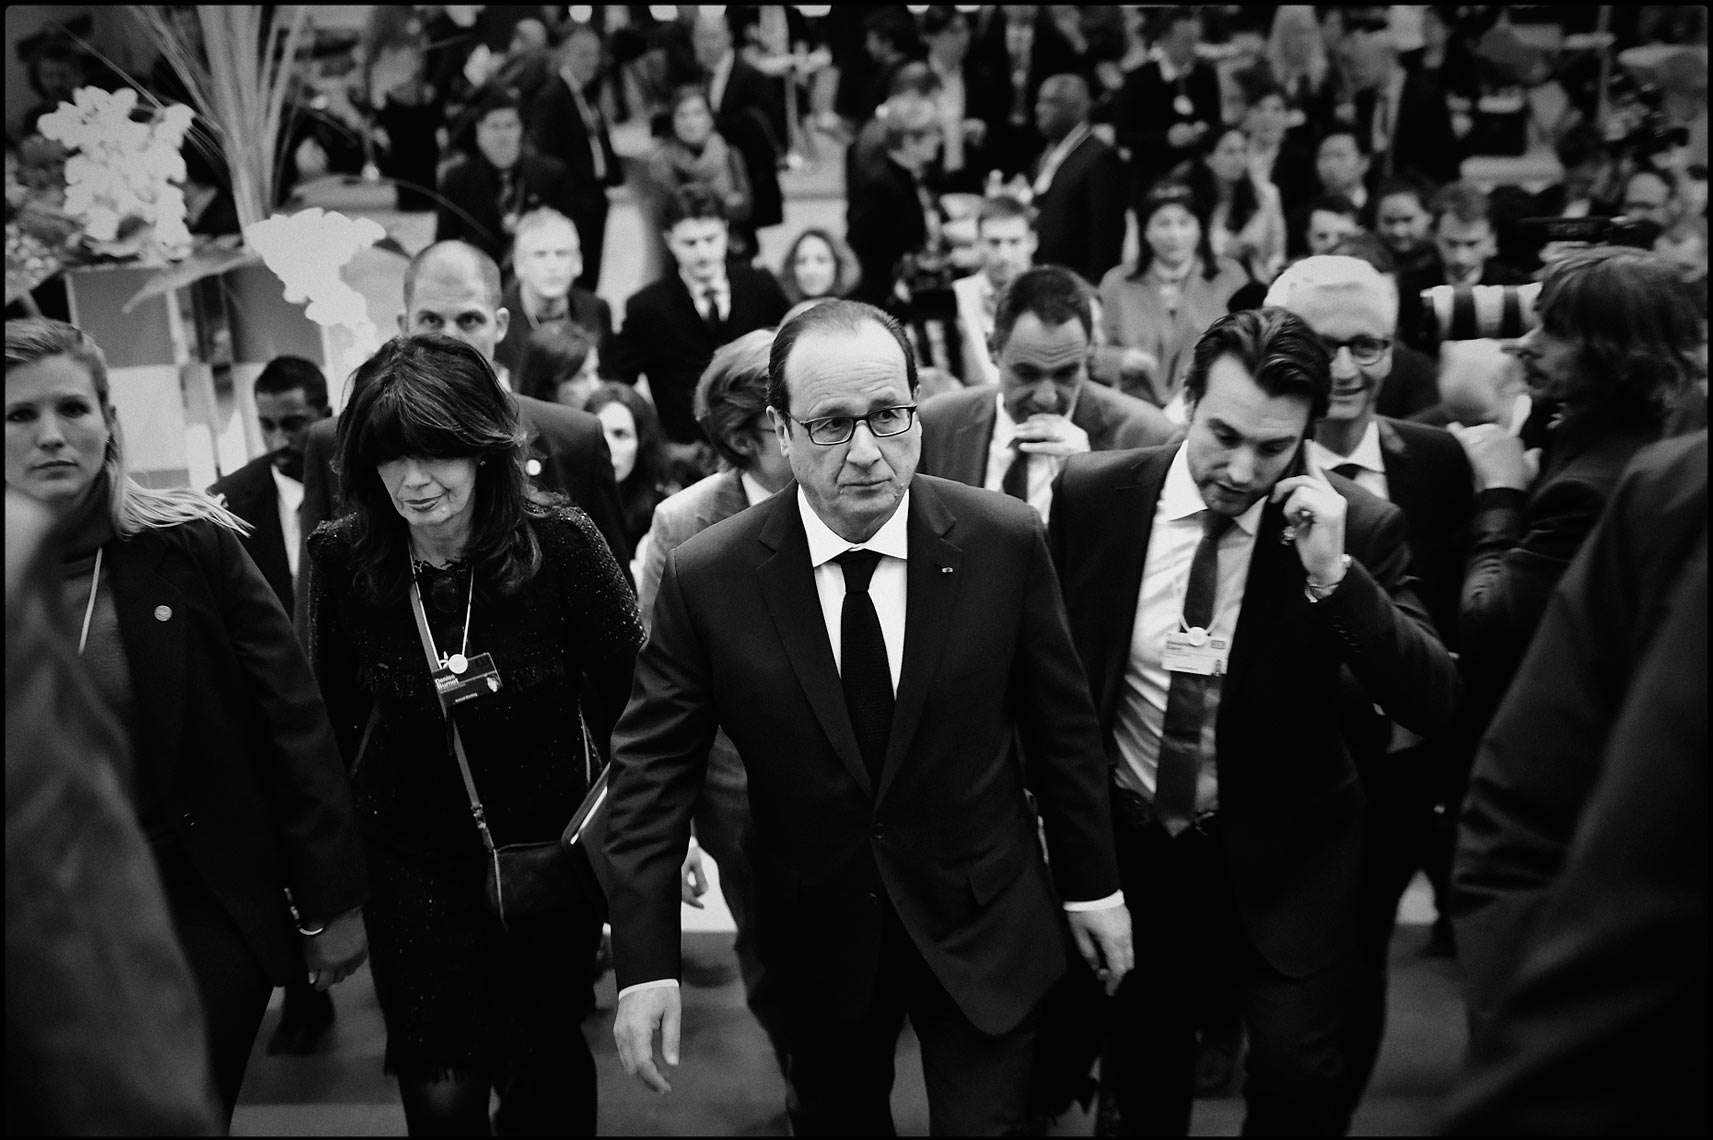 President of France Francois Hollande